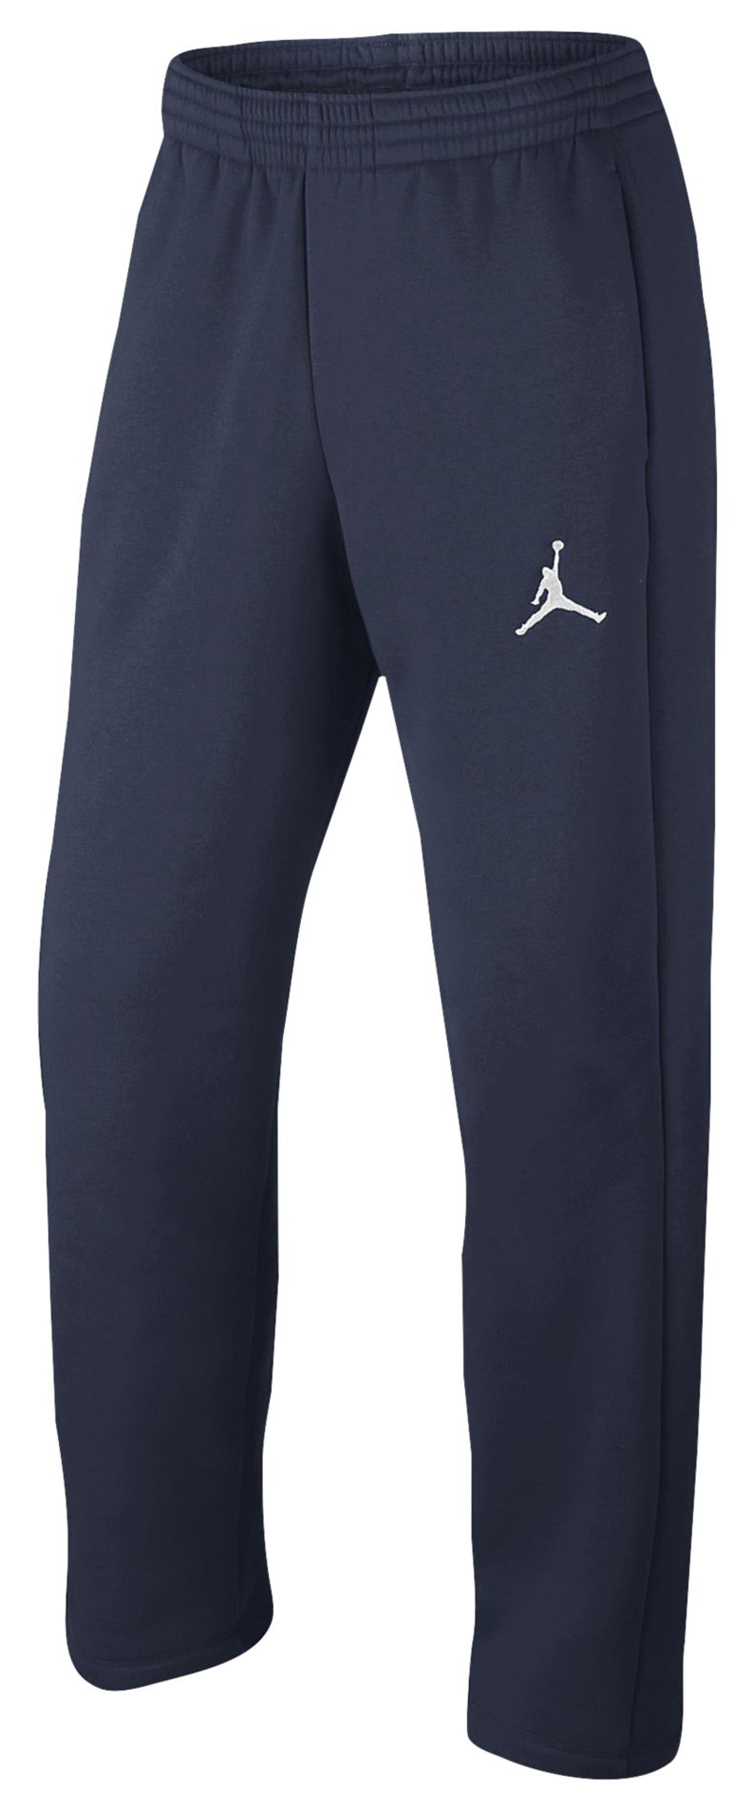 jordan-11-win-like-82-midnight-navy-pants